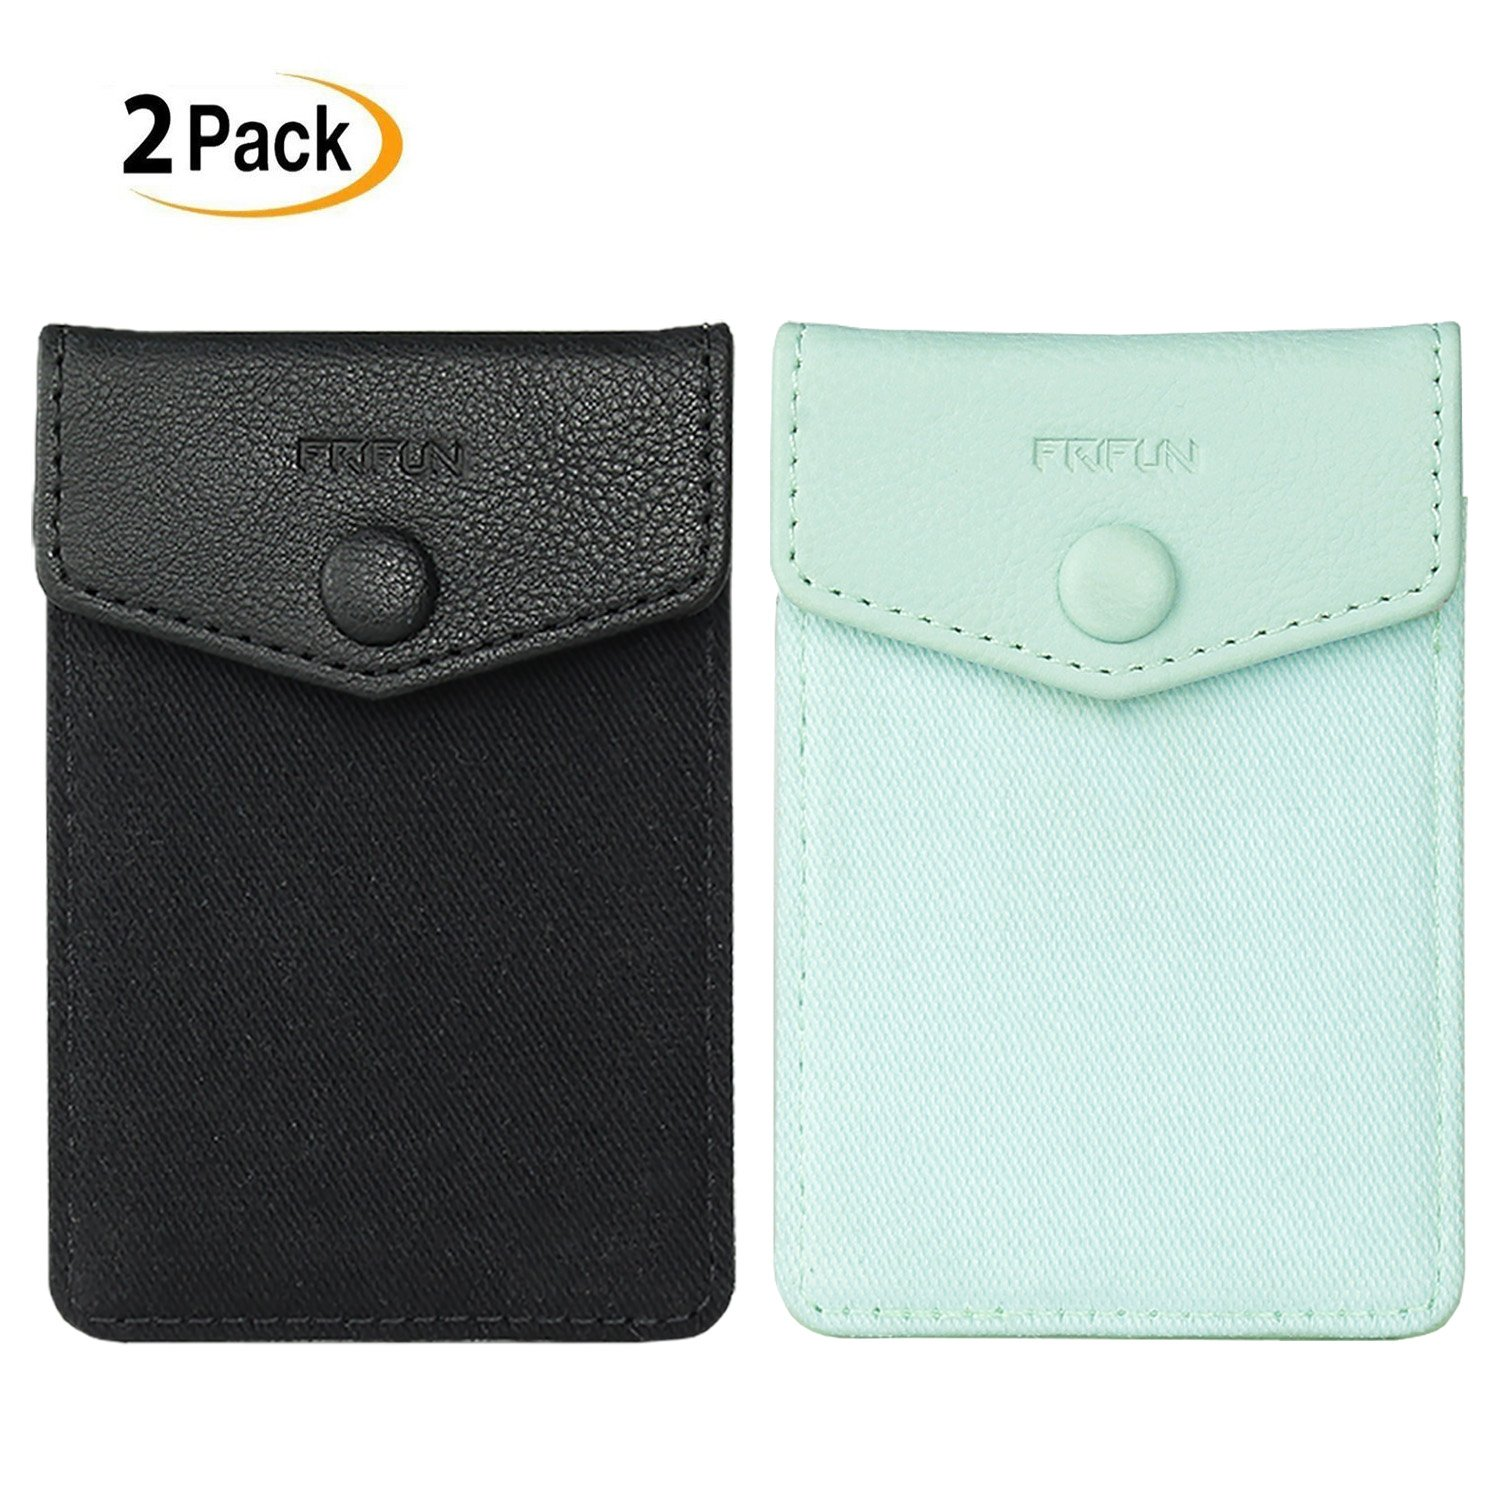 FRIFUN Cell Phone Wallet Ultra-slim Self Adhesive Credit Card Holder Stick on Wallet Cell Phone Leather Wallet For Smartphones Covers Credit Cards and Cash (Black + Mint) 2 packs